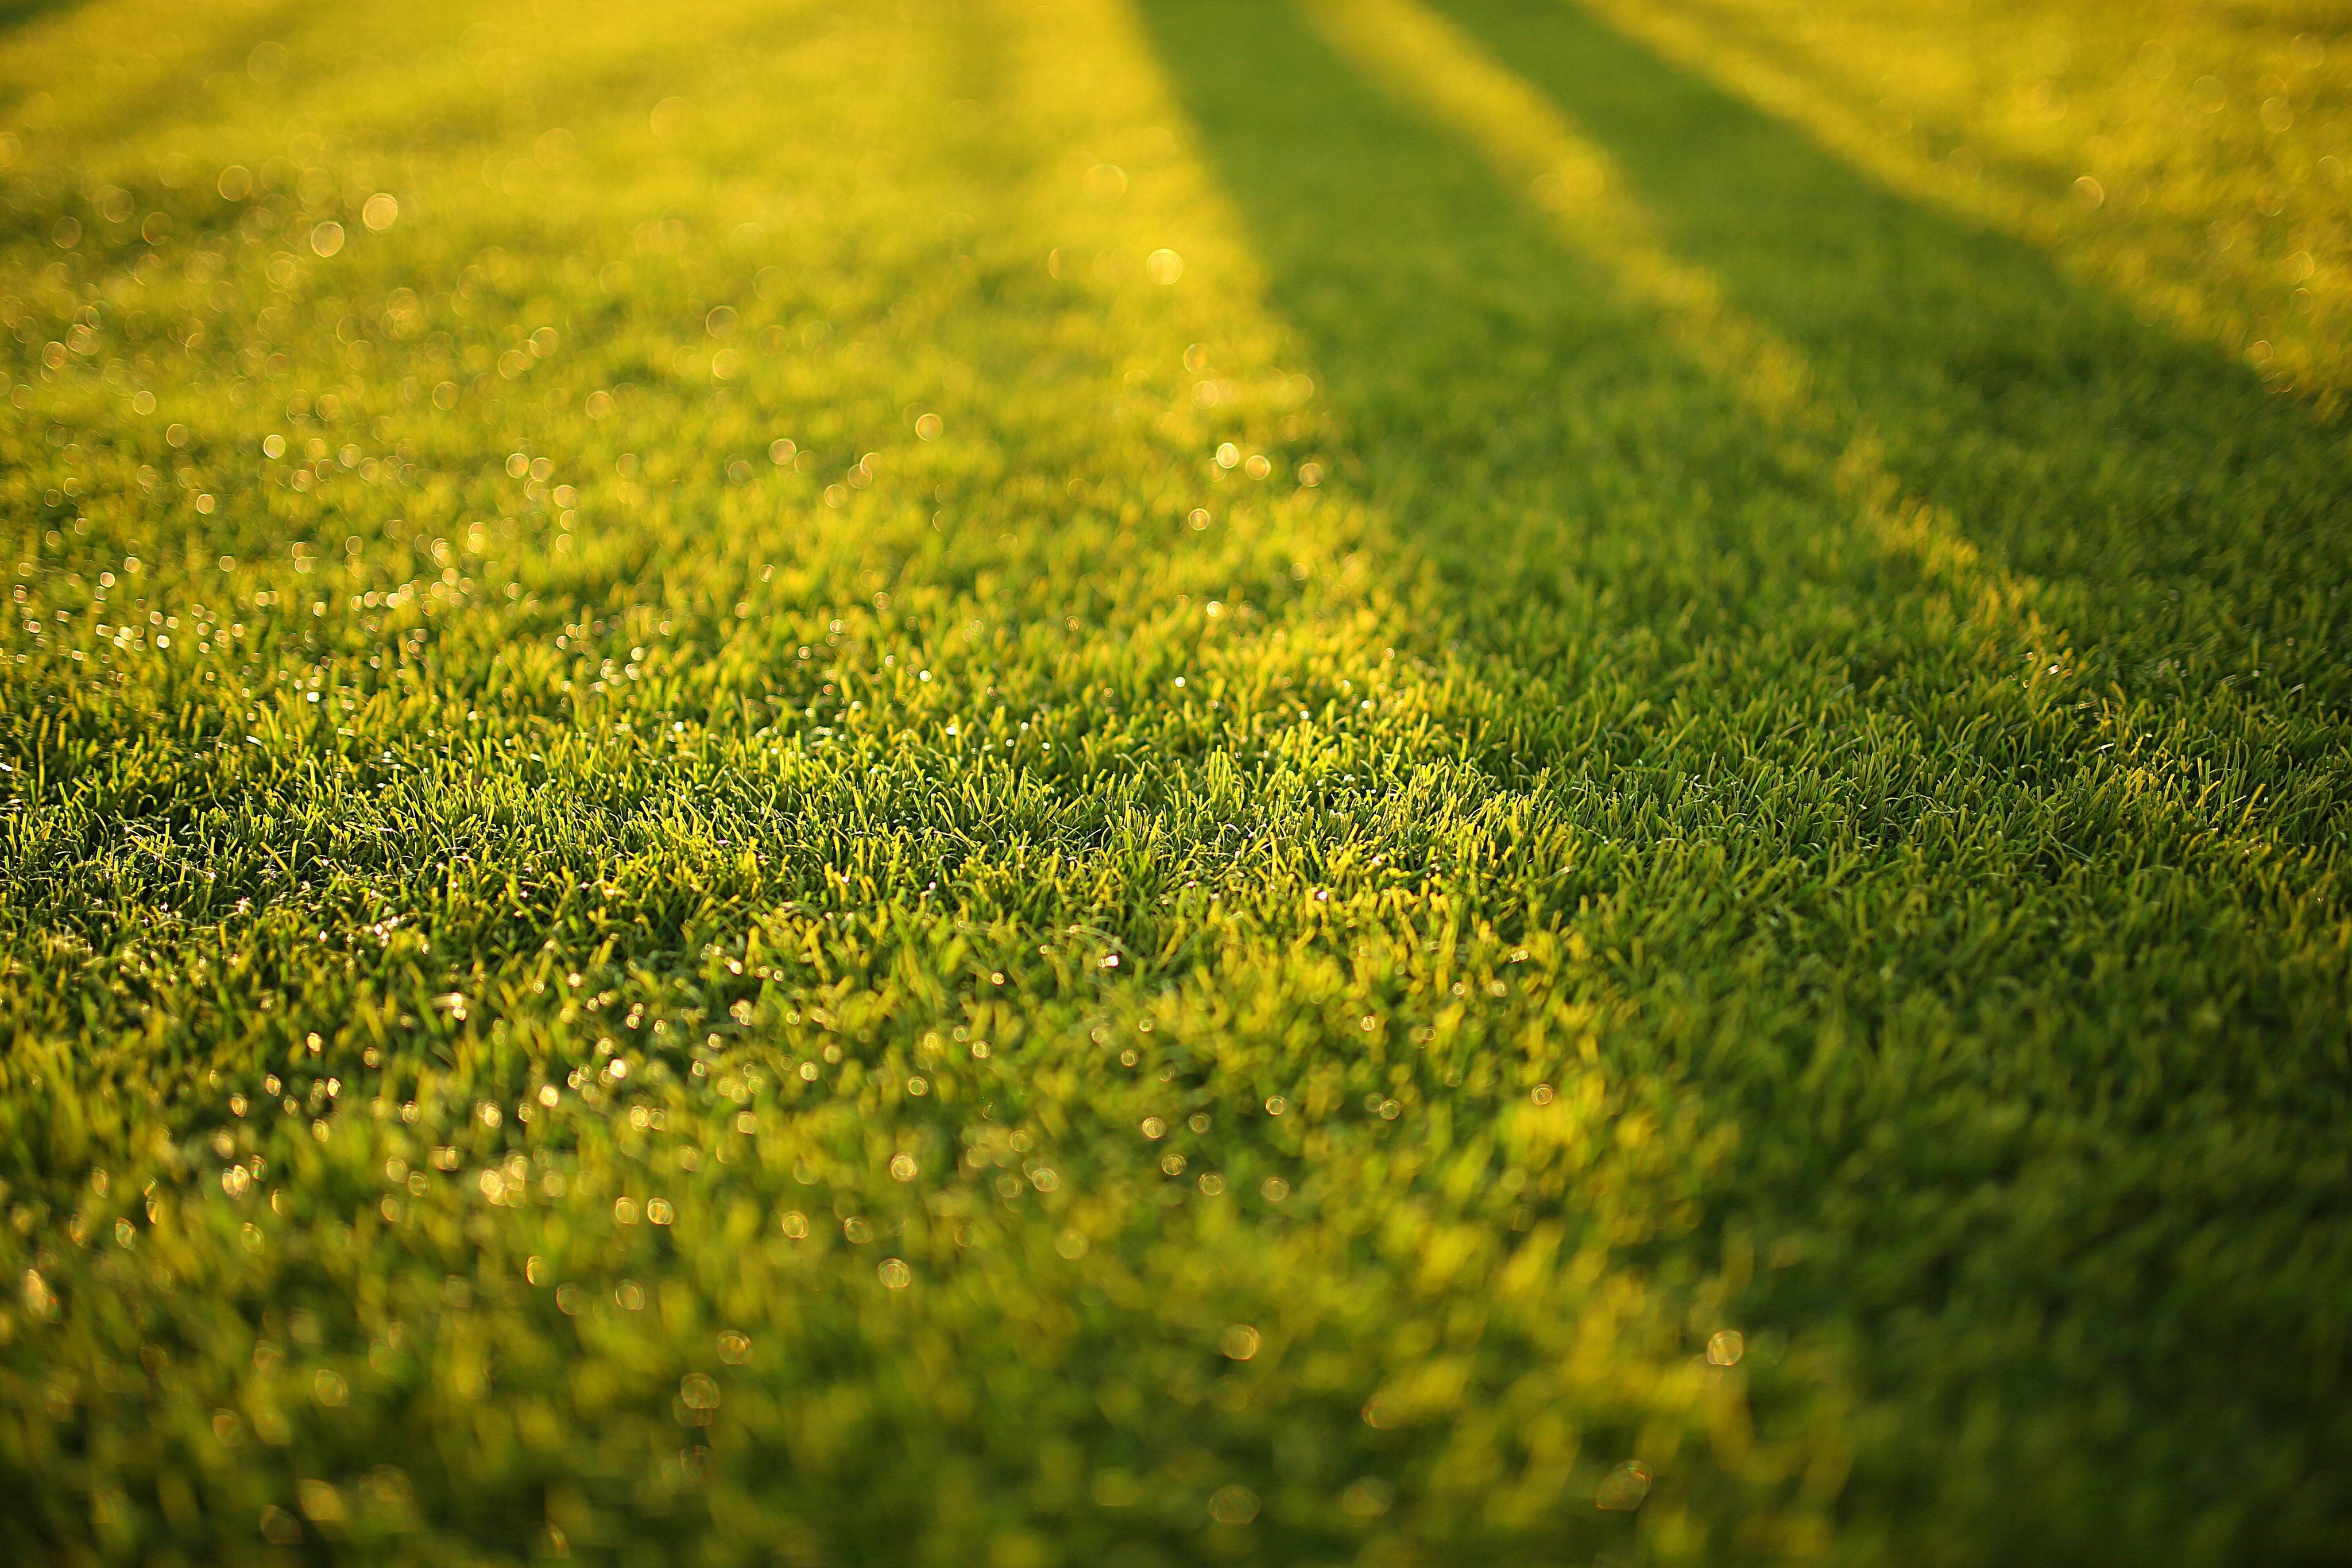 Sunlight reflecting on lawn